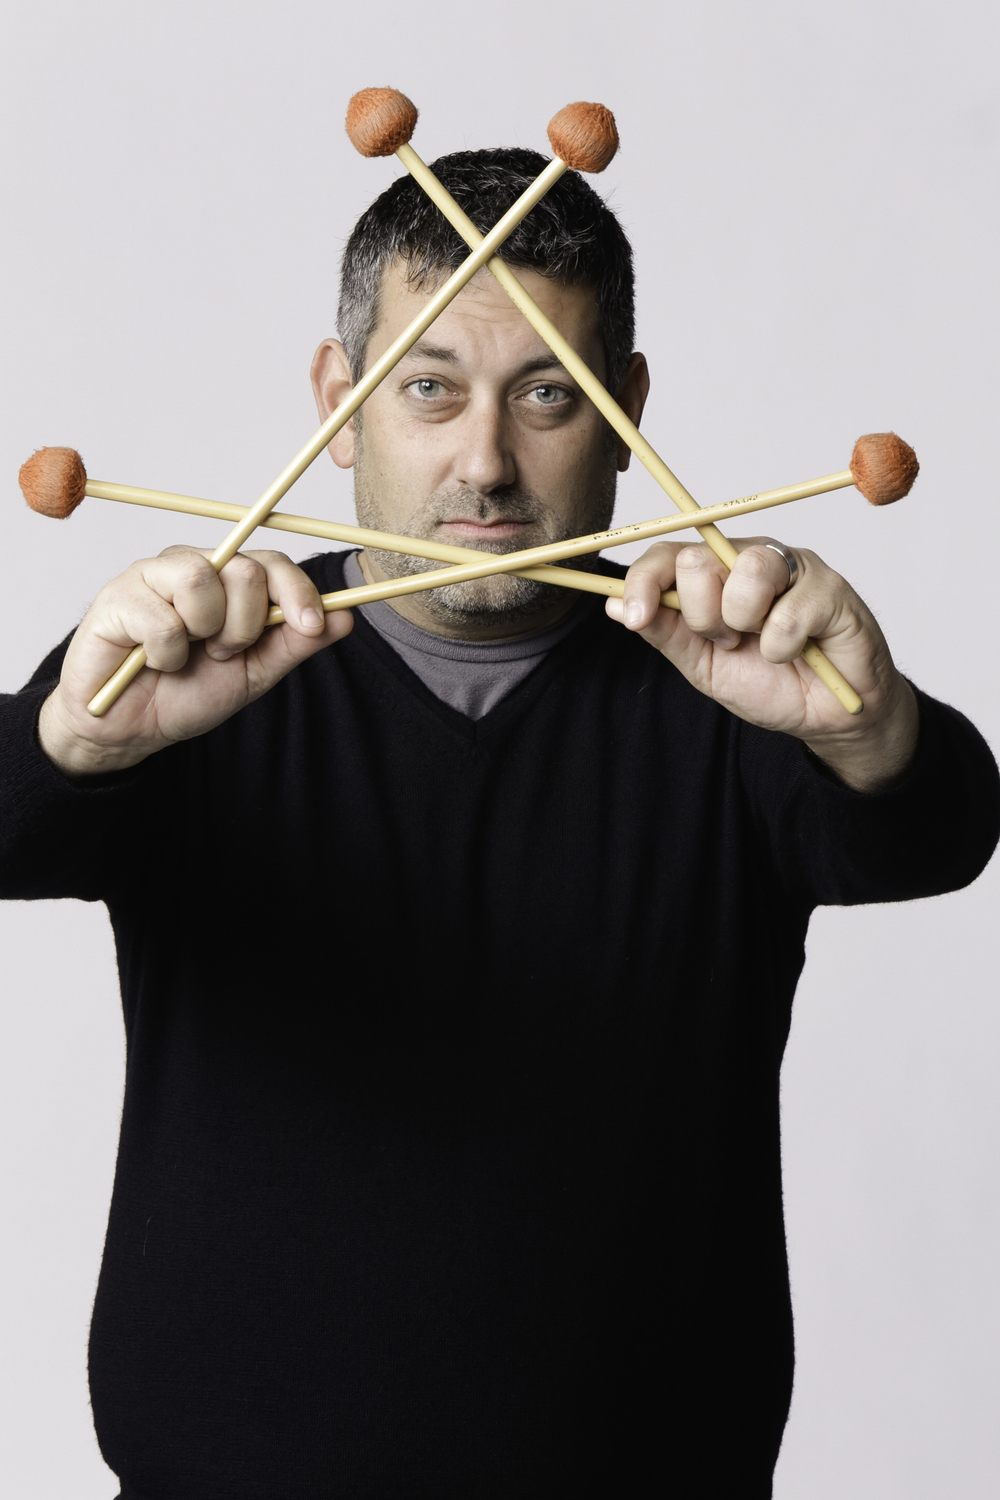 PAUL MURR, percussion